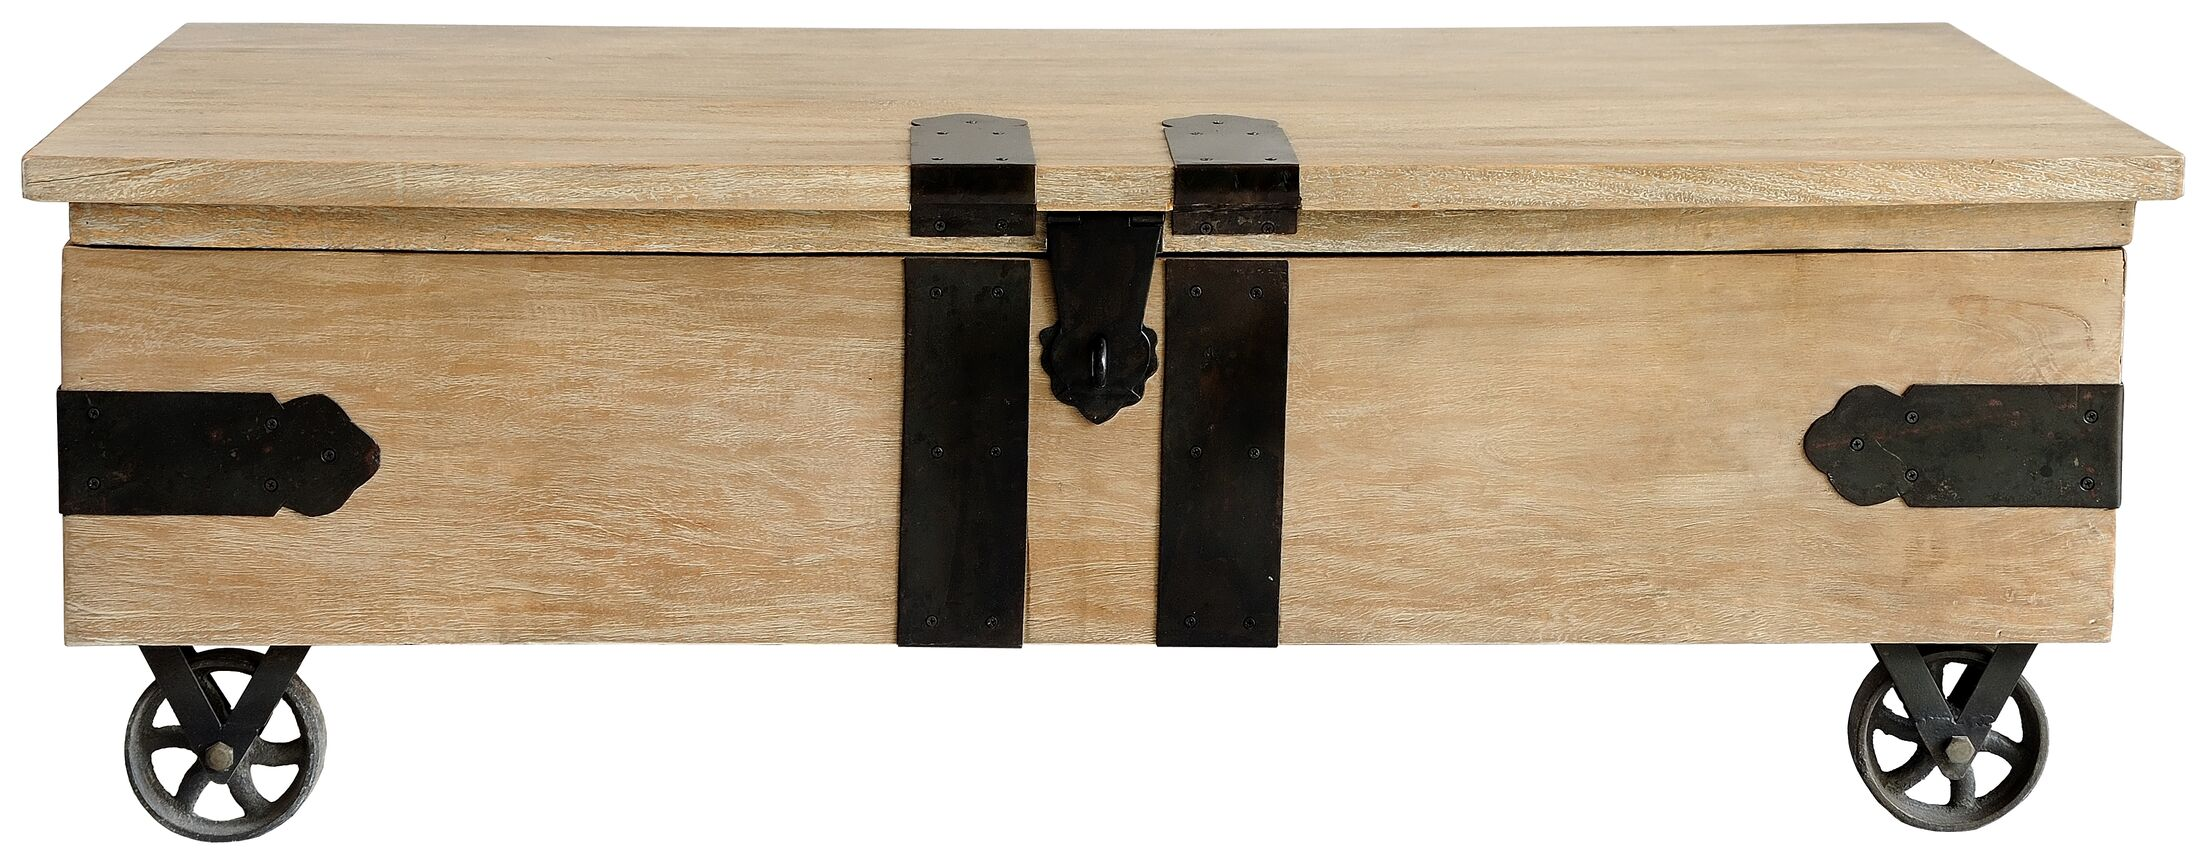 Utility Trunk Coffee Table with Lift Top